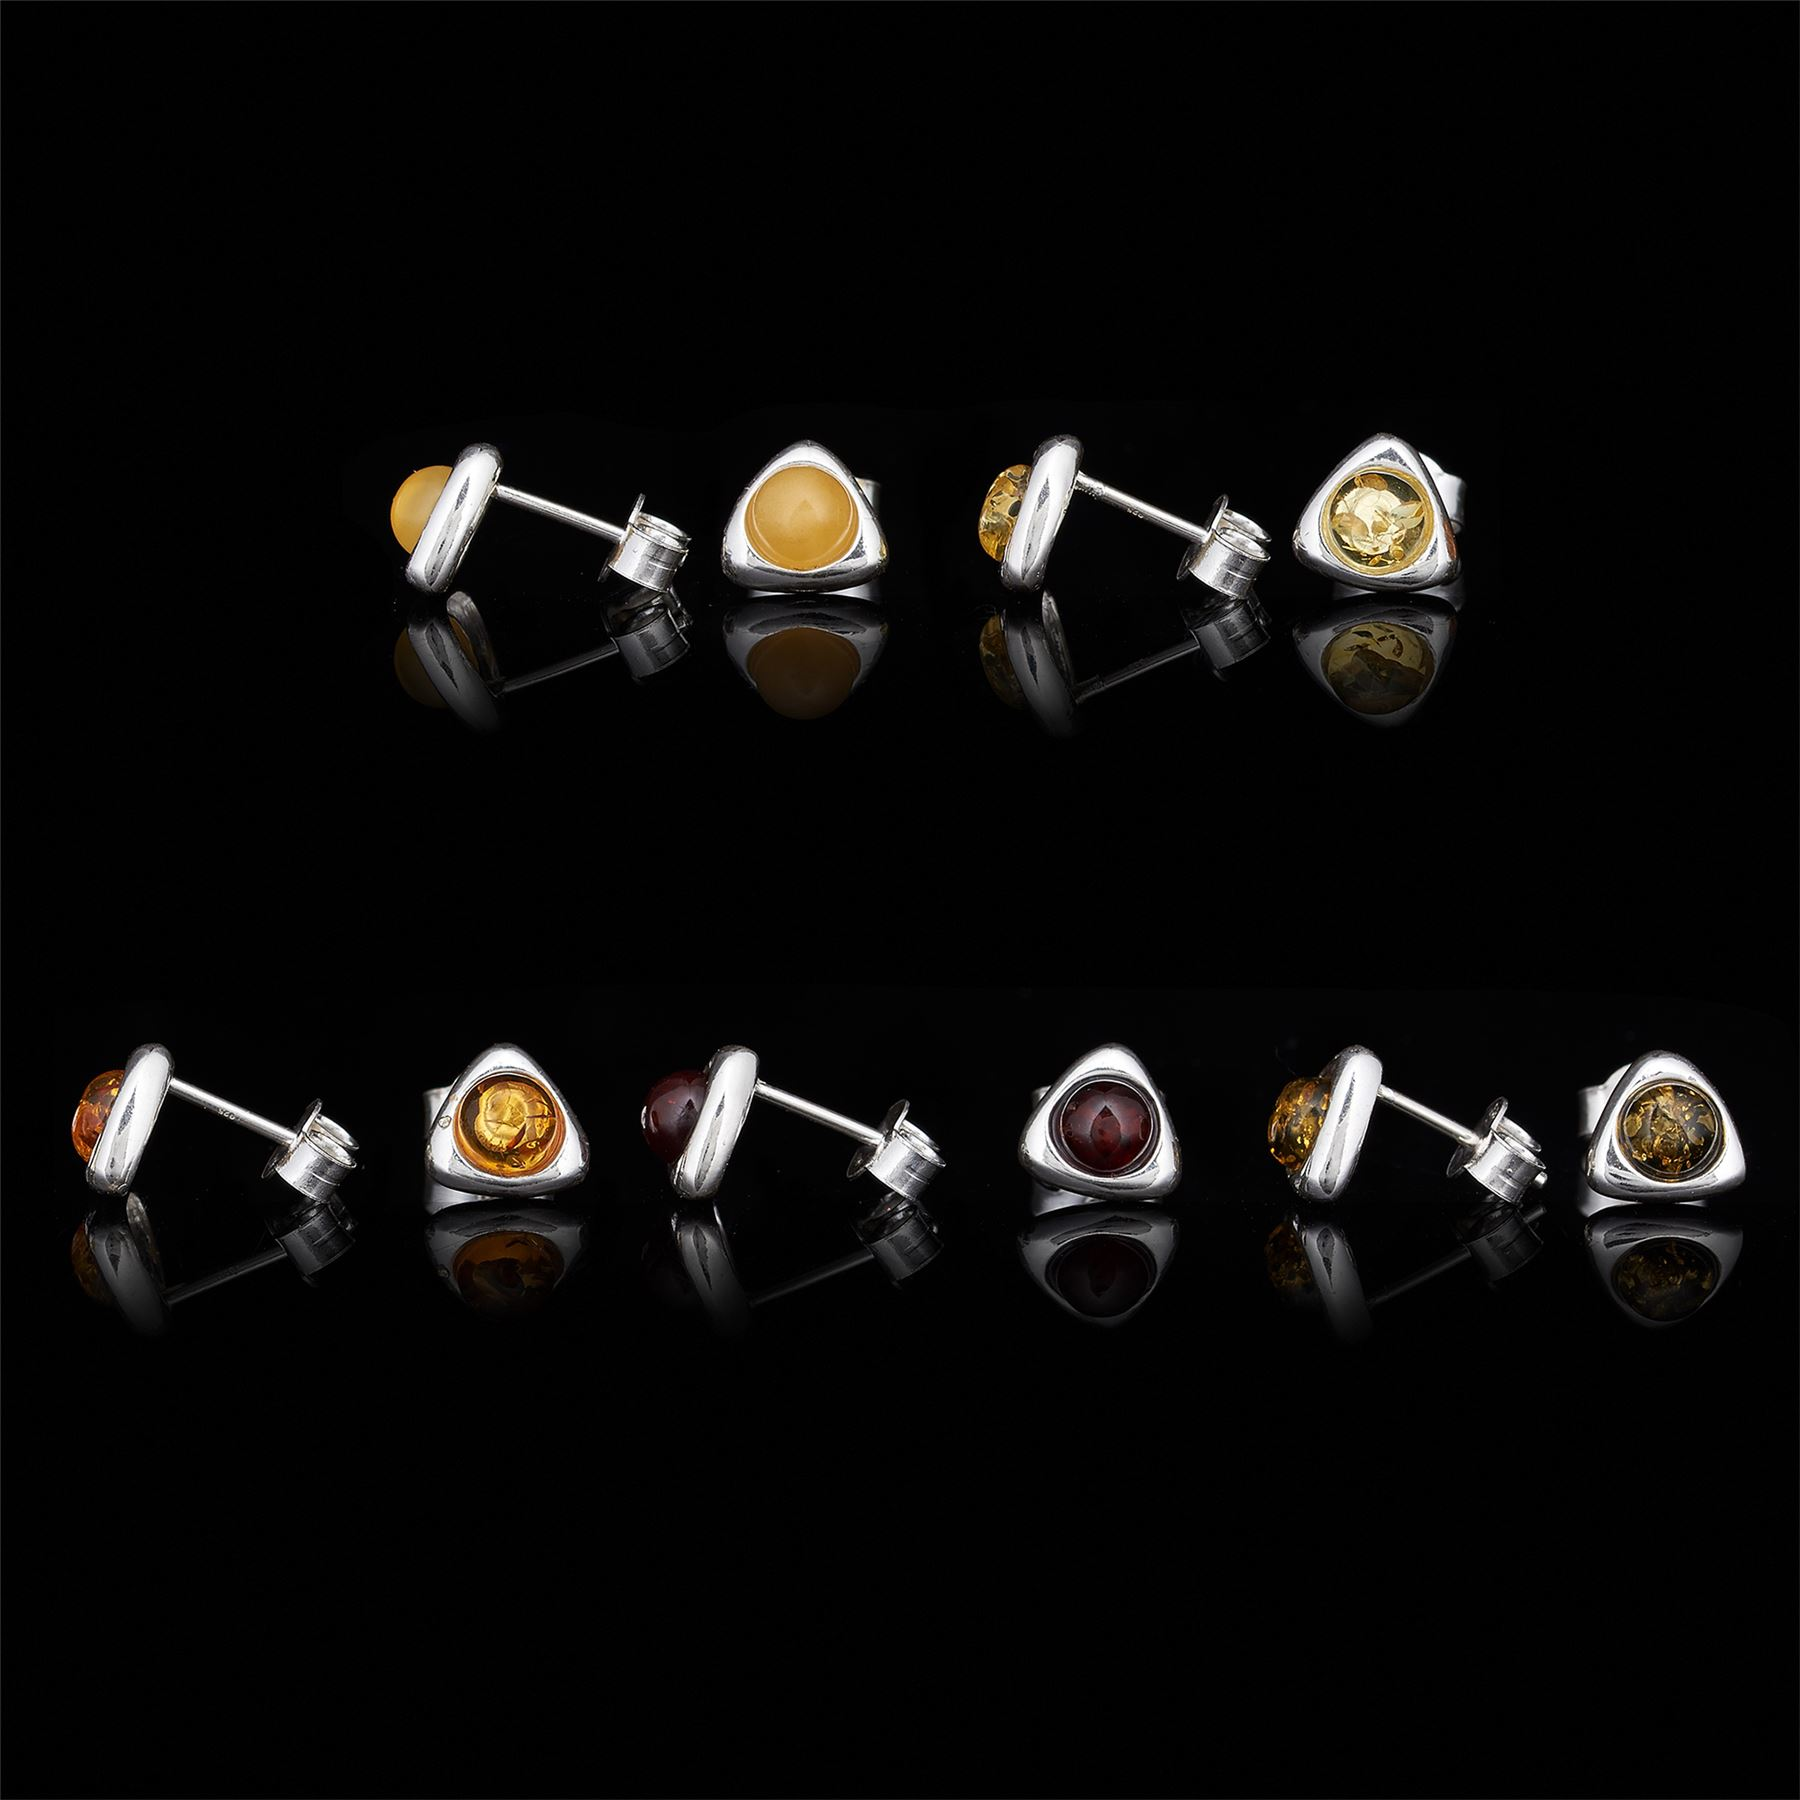 Amberta-Genuine-925-Sterling-Silver-Earrings-with-Natural-Baltic-Amber-Gemstone thumbnail 141